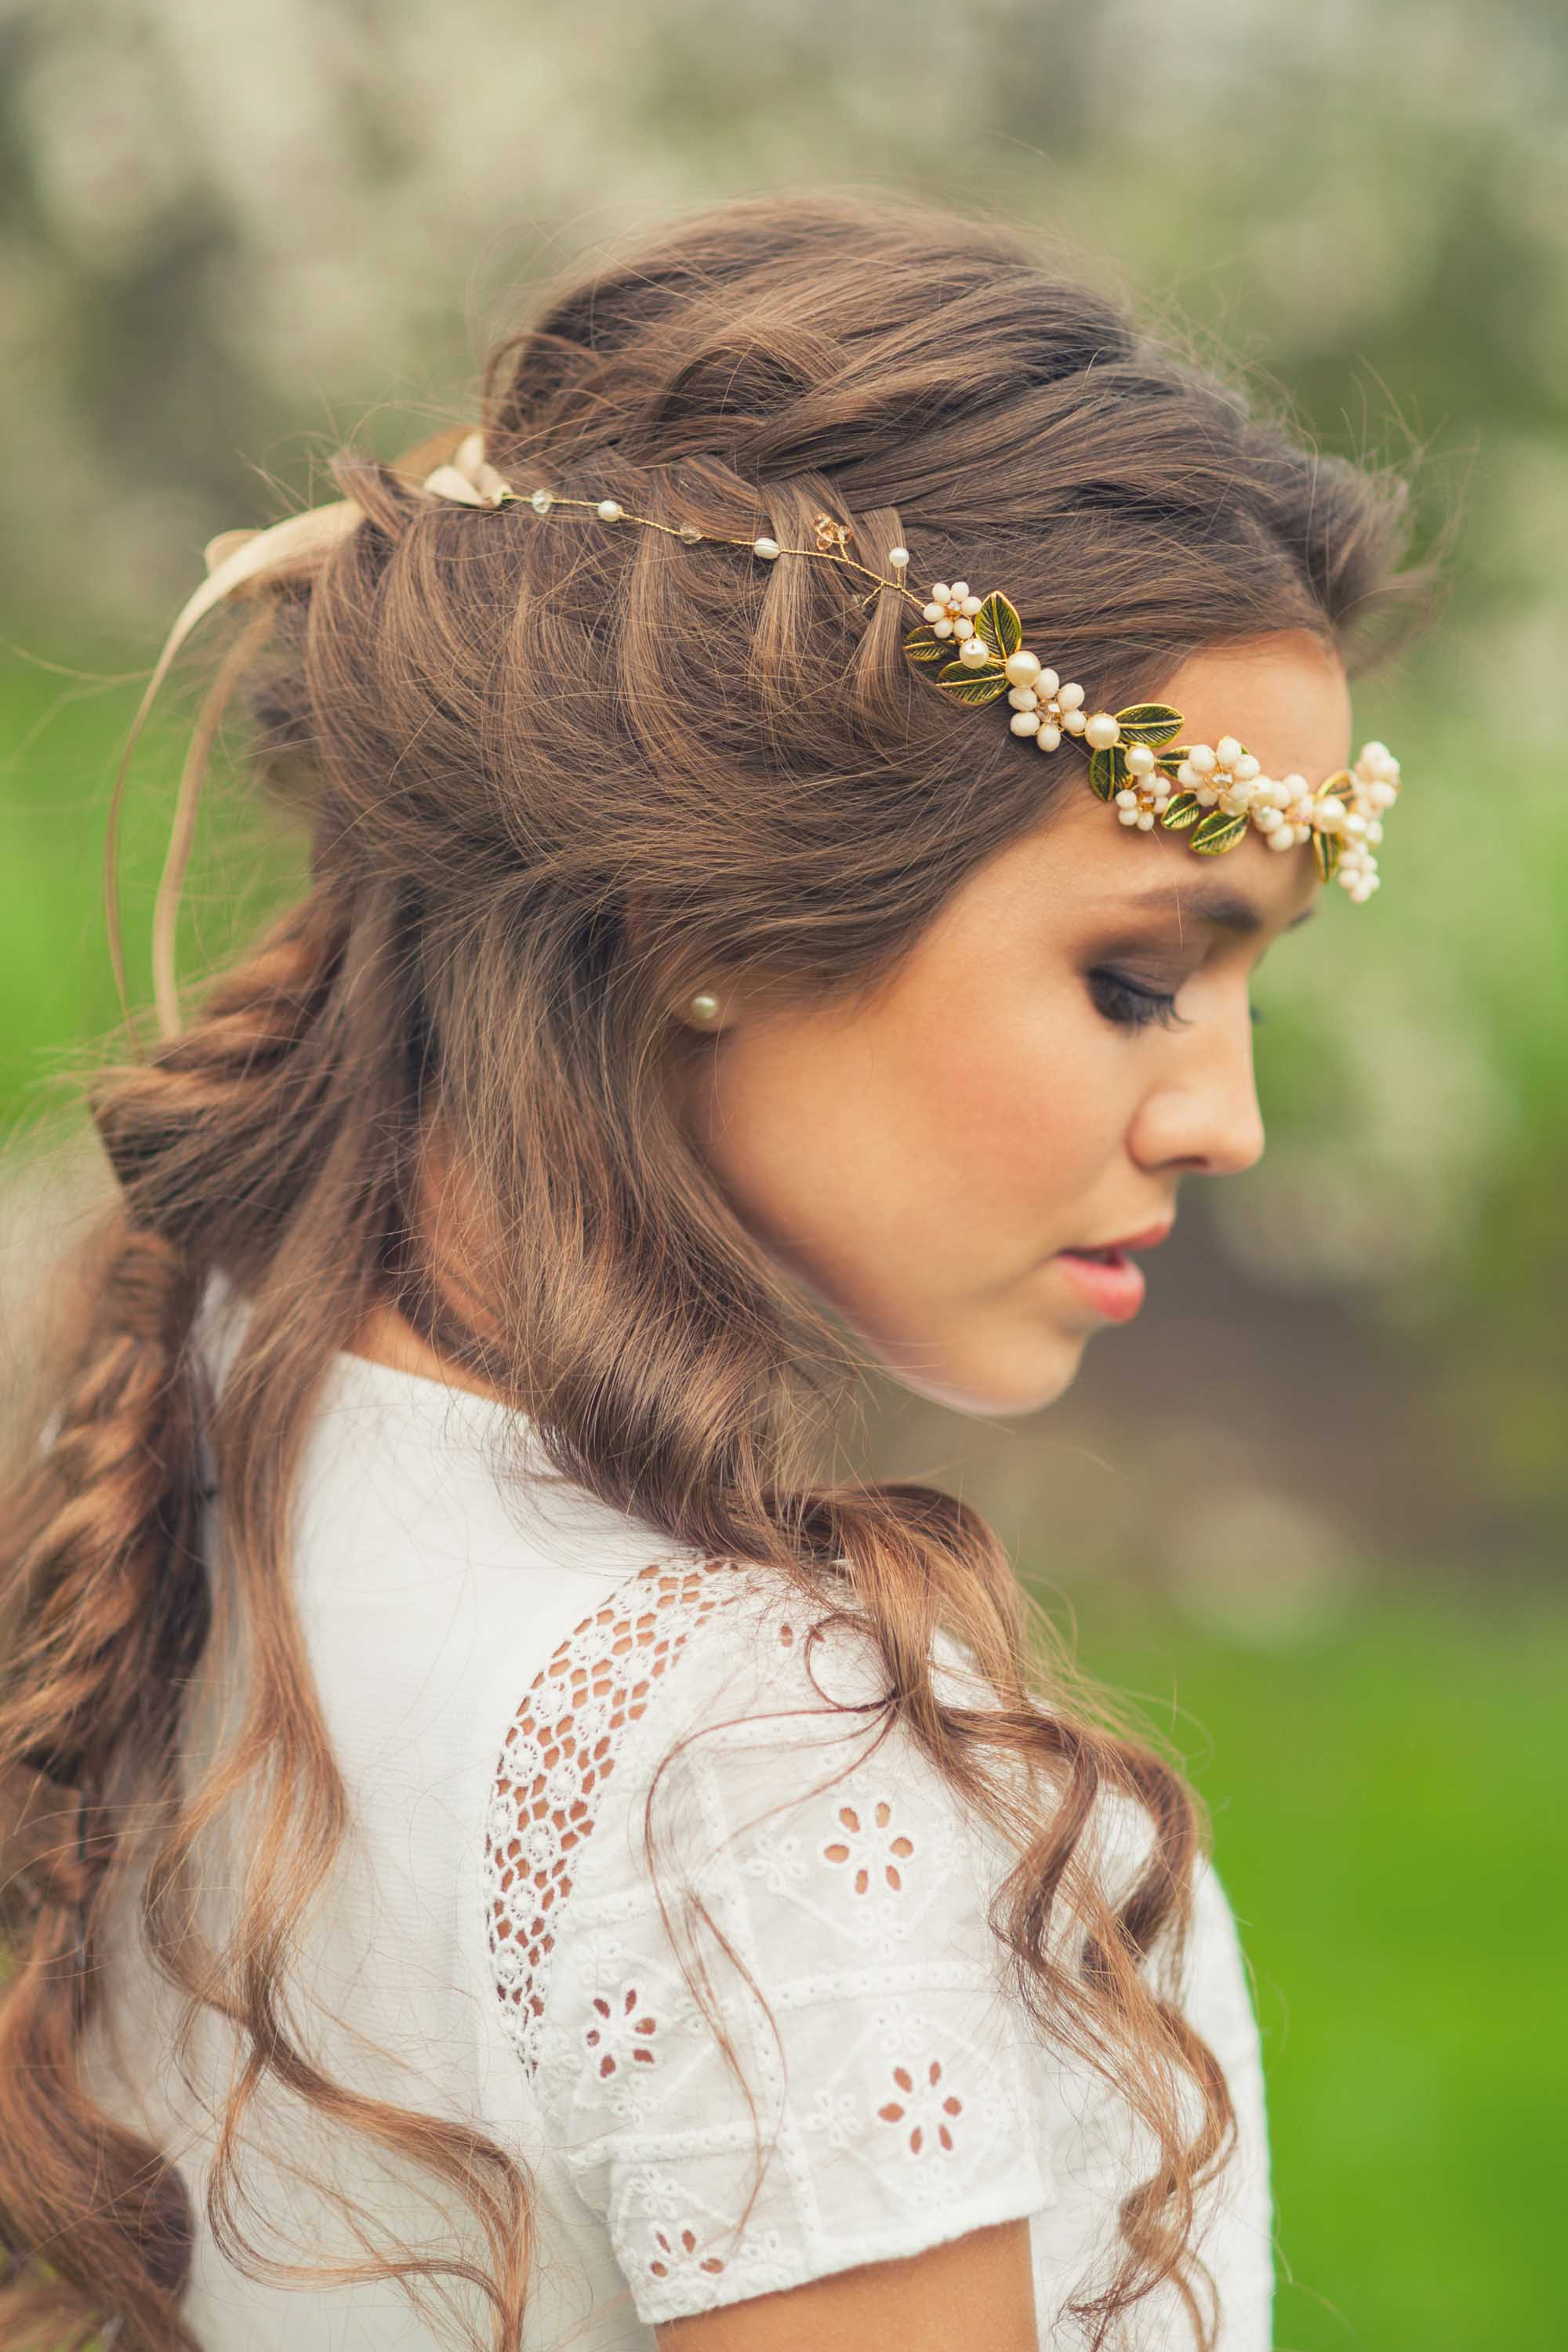 Curly wedding hair: Side view of a woman with medium brown hair worn in curls and braids with a flower crown accessory